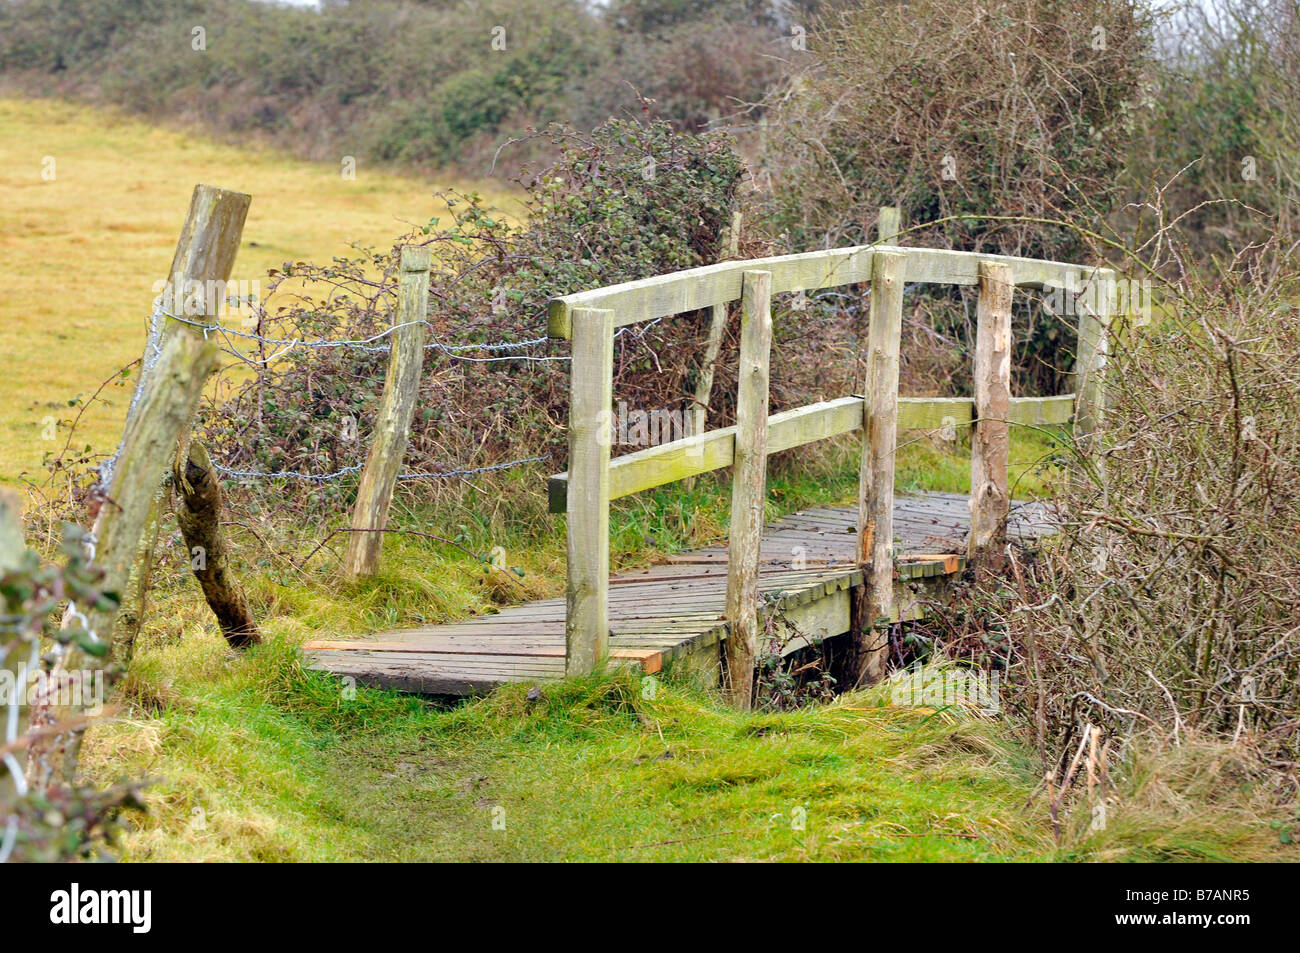 a rickety tumbledown old wooden bridge footbridge on a country walkway pathway used by ramblers and walkers pathways - Stock Image